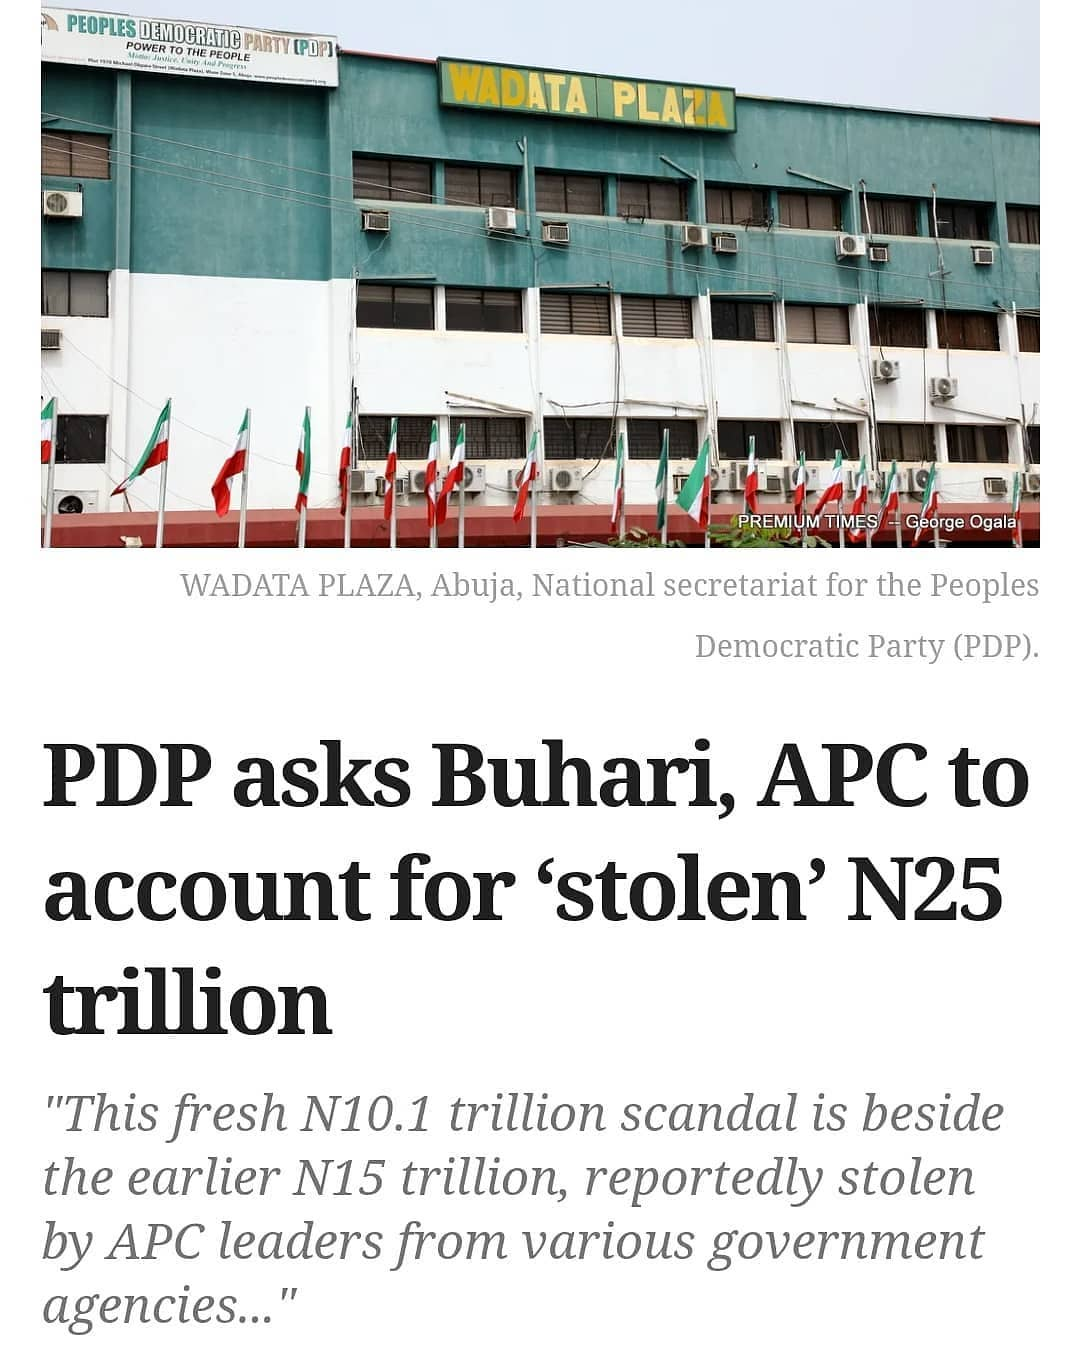 """The Peoples Democratic Party (PDP) has again accused the All Progressives Congress (APC) of stealing N10.1 from the national treasury despite its acclaimed shortage of funds to finance the 2021 budget.  While President Muhammadu Buhari-led administration has often pointed to fall in oil price as the reason for Nigeria's rising debt profile, the PDP said the administration is encouraging corruption.  Without naming a source or evidence, the PDP, in a statement issued on Monday, said N9.6 trillion ($20 billion) and another N500 billion belonging to the Treasury Single Account (TSA), have been """"allegedly diverted to APC interests"""".  """"This fresh N10.1 trillion scandal is beside the earlier N15 trillion, reportedly stolen by APC leaders from various government agencies, including the stealing of N9.3 trillion as detailed in the leaked NNPC memo, bringing the sum looted in these cases to N25.1 trillion,"""" the party spokesperson, Kola Ologbondiyan recalled.  Mr Ologbondiyan said the volume of corruption cases filed against officials of the current administration was a clear indication that Nigeria had been seized by """"ferocious economic brigands in very high places"""",  The statement said, """"under the APC, our nation has become one of the most corrupt countries in the world, having dropped 13 places since 2015 and plunging to a putrid 149th place on the corruption perception index as released by Transparency International (TI).  """"Only recently, Nigerians were shocked by revelations that trillions of naira meant for purchase of arms to defend our nation could not be traced.  """"The PDP invites Nigerians to note that the Buhari Presidency and the APC has not been able to account for the N15 trillion earlier reportedly looted from various agencies of government, including the stolen N9.3 trillion NNPC fund, the N1.1 trillion worth of crude stolen with 18 unregistered ships as well as various oil subsidy sleaze."""